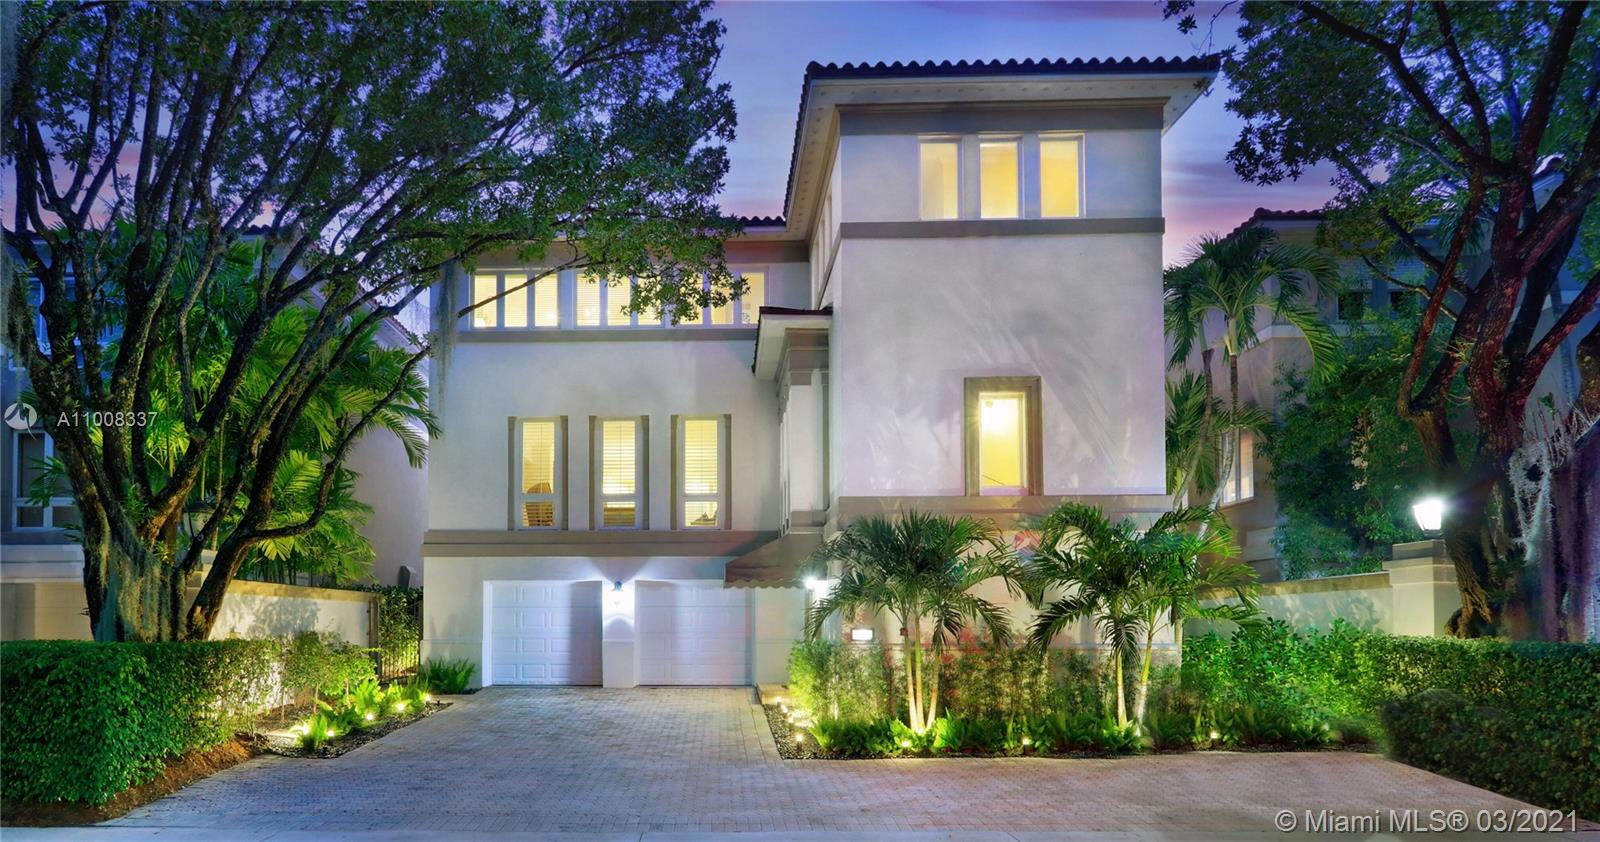 BAYSHORE VILLAS is an Exceptional Coconut Grove Enclave of only 25 Private Residences - Impressive Oak Laden 24 Hr Guarded Entrance - Newer Roof w/Impact Windows & Doors - White Stone Flooring w/Sisal Stairs & Elevator Entry - First Floor Bonus Room w/ Bar & Guest Suite - Main Floor w/Open Living - DIning - & Media Spaces Dramatic Ceilings &  Art Walls - White Lacquer Cabinets & Granite Island Kitchen w/ Stainless Subzero & Miele Appliances - Sunlit Breakfast Room - Upstairs Tree-Top Grand Salon & Spa Bath w/Designer Closet - 2 Bedroom Suites & Bath - Laundry Room - 2 Car Garage Professionally Landscaped & Lighted Patio & Yard - Community Pool & Spa - 2 Tennis Courts -  Docks - Best Parks, Schools, Coconut Grove Marinas, Restaurants & Shopping. Minutes to Airport, Downtown & South Beach.